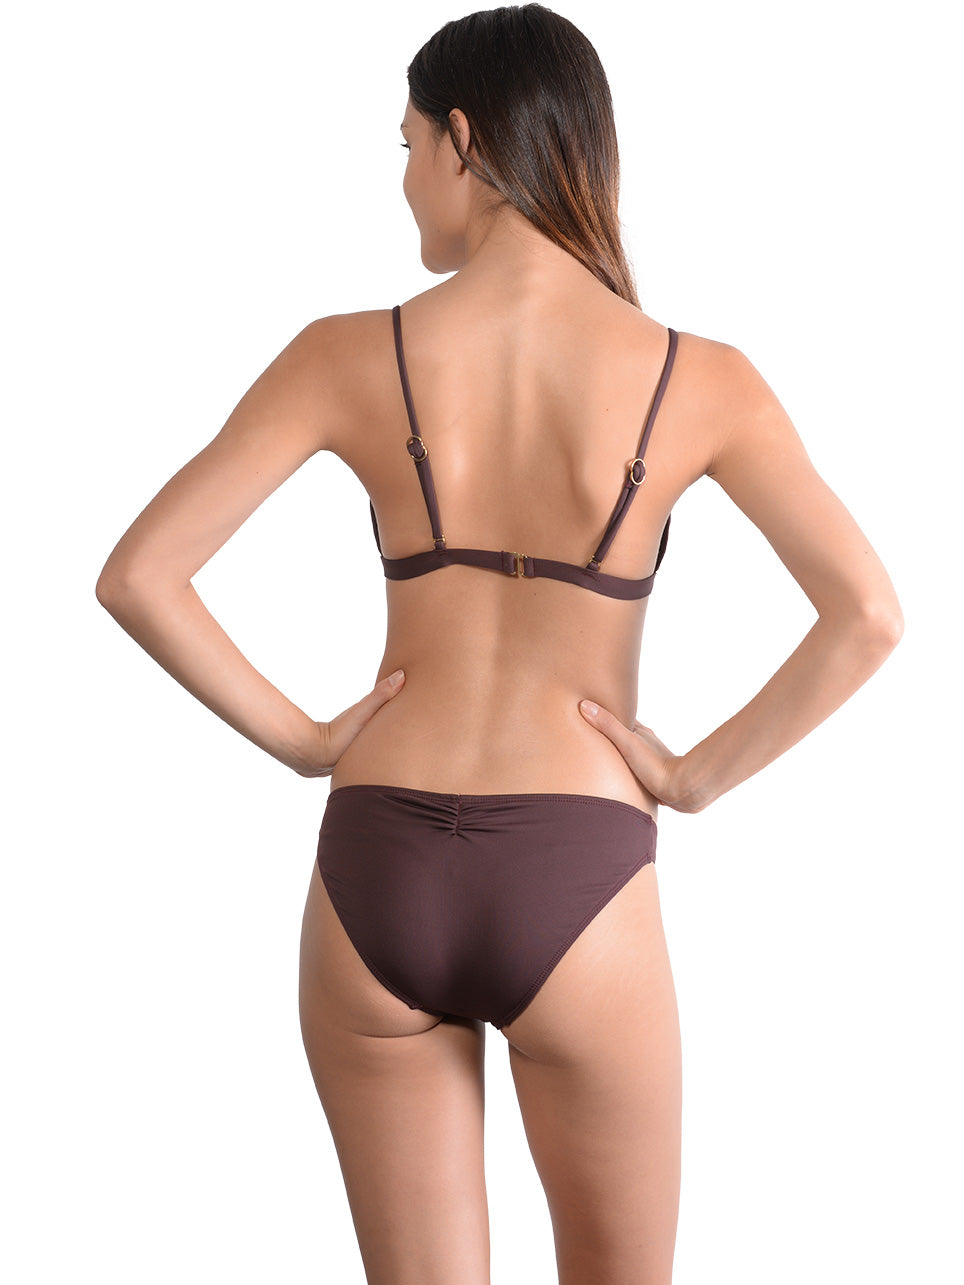 Back view of Seduce Keyhole Bralette Bikini Top in Cocoa